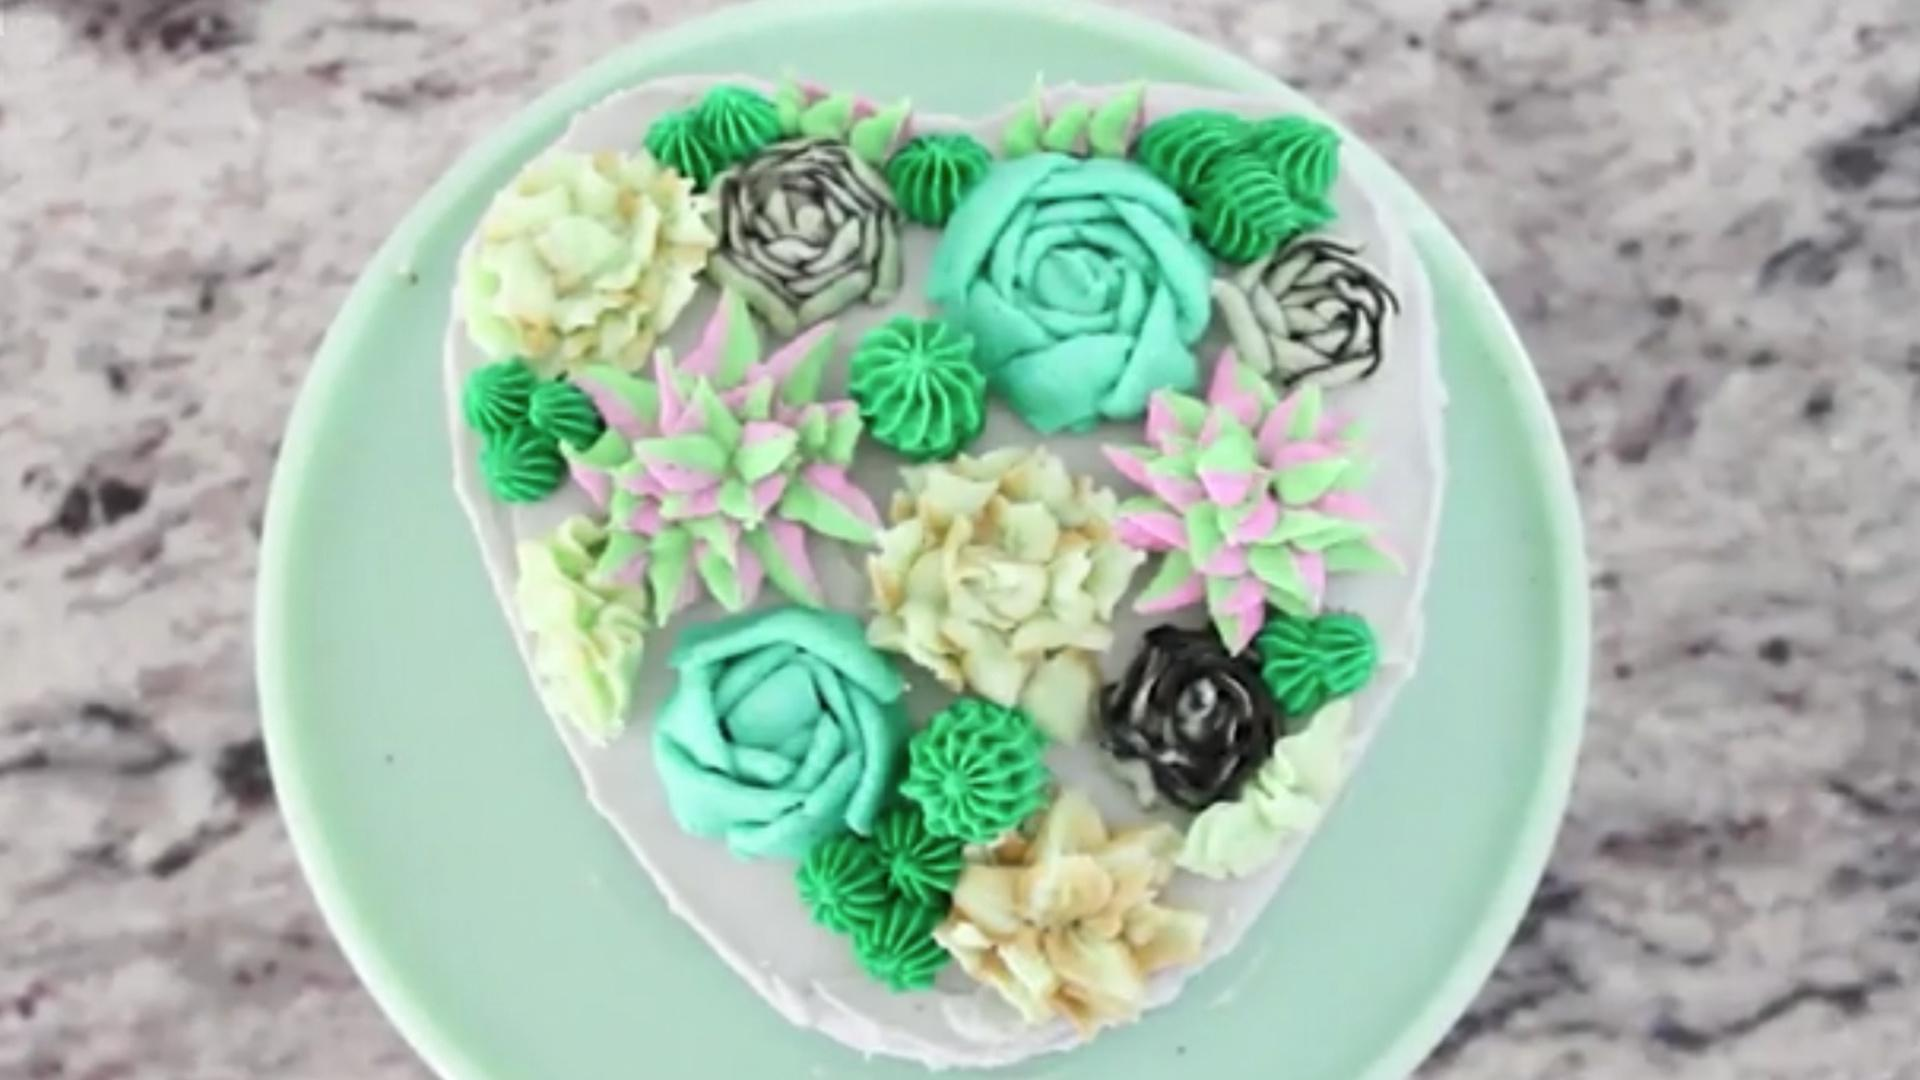 These Succulent Cakes Are the Newest Cake Trend Sweeping Social Media